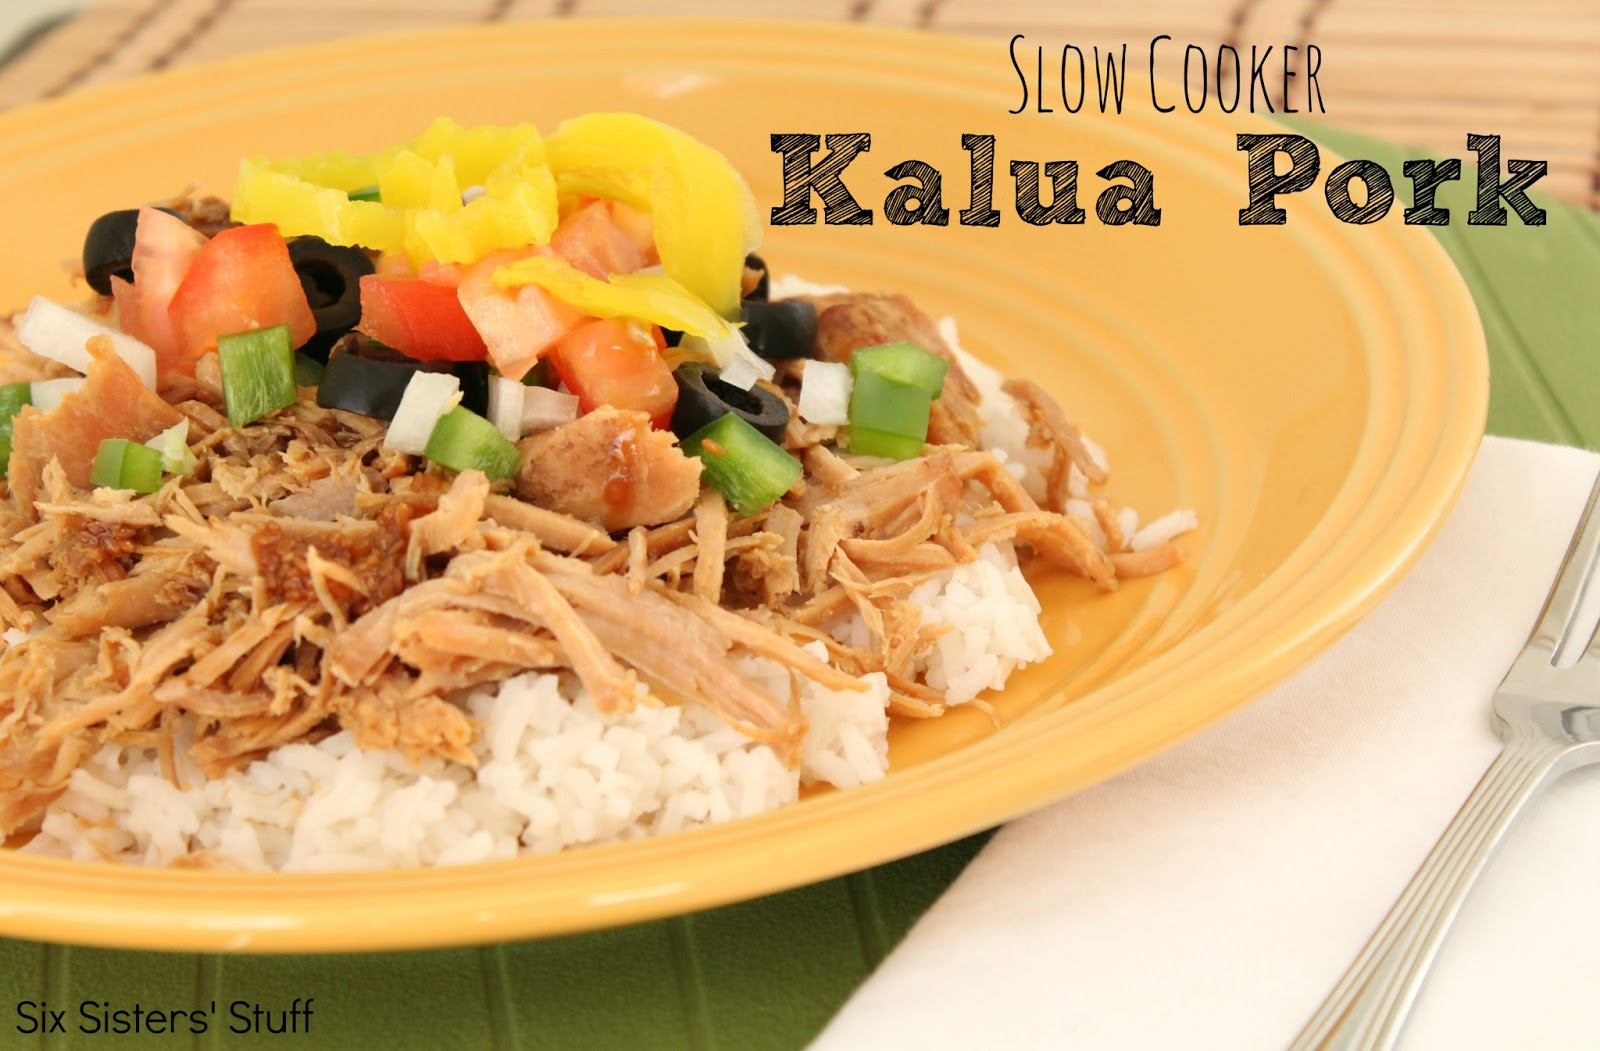 Slow Cooker Kalua Pork Roast Recipe | Six Sisters' Stuff